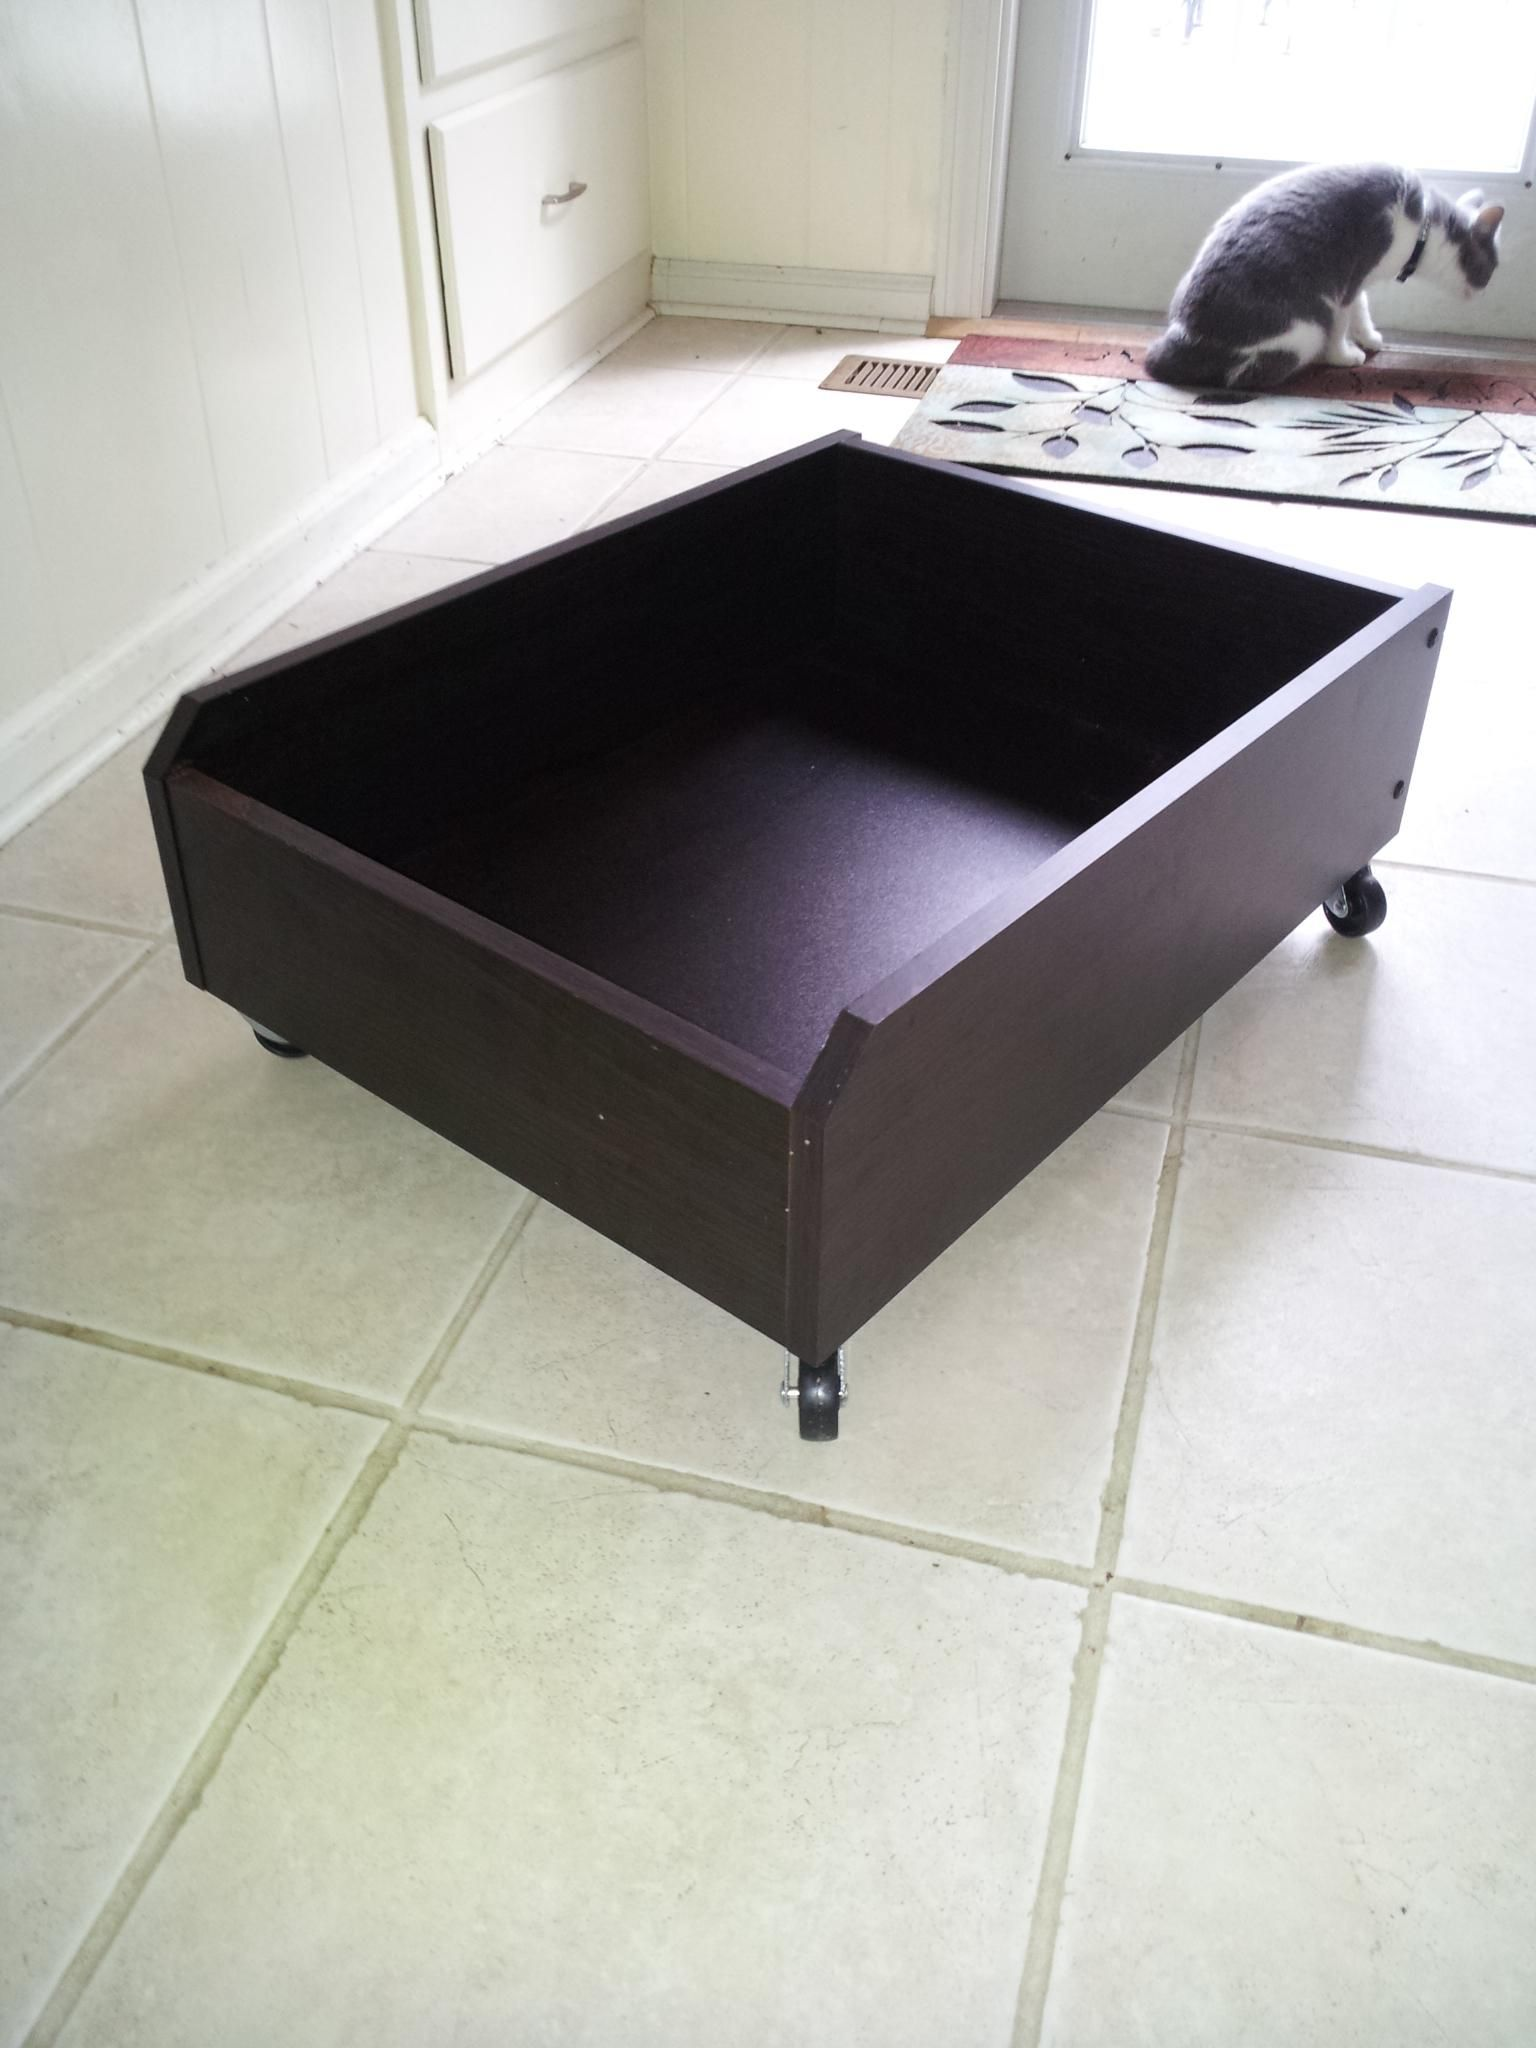 storage under a crates drawers on your rolling drawer build passion own bed crate underbed remodelaholic diy